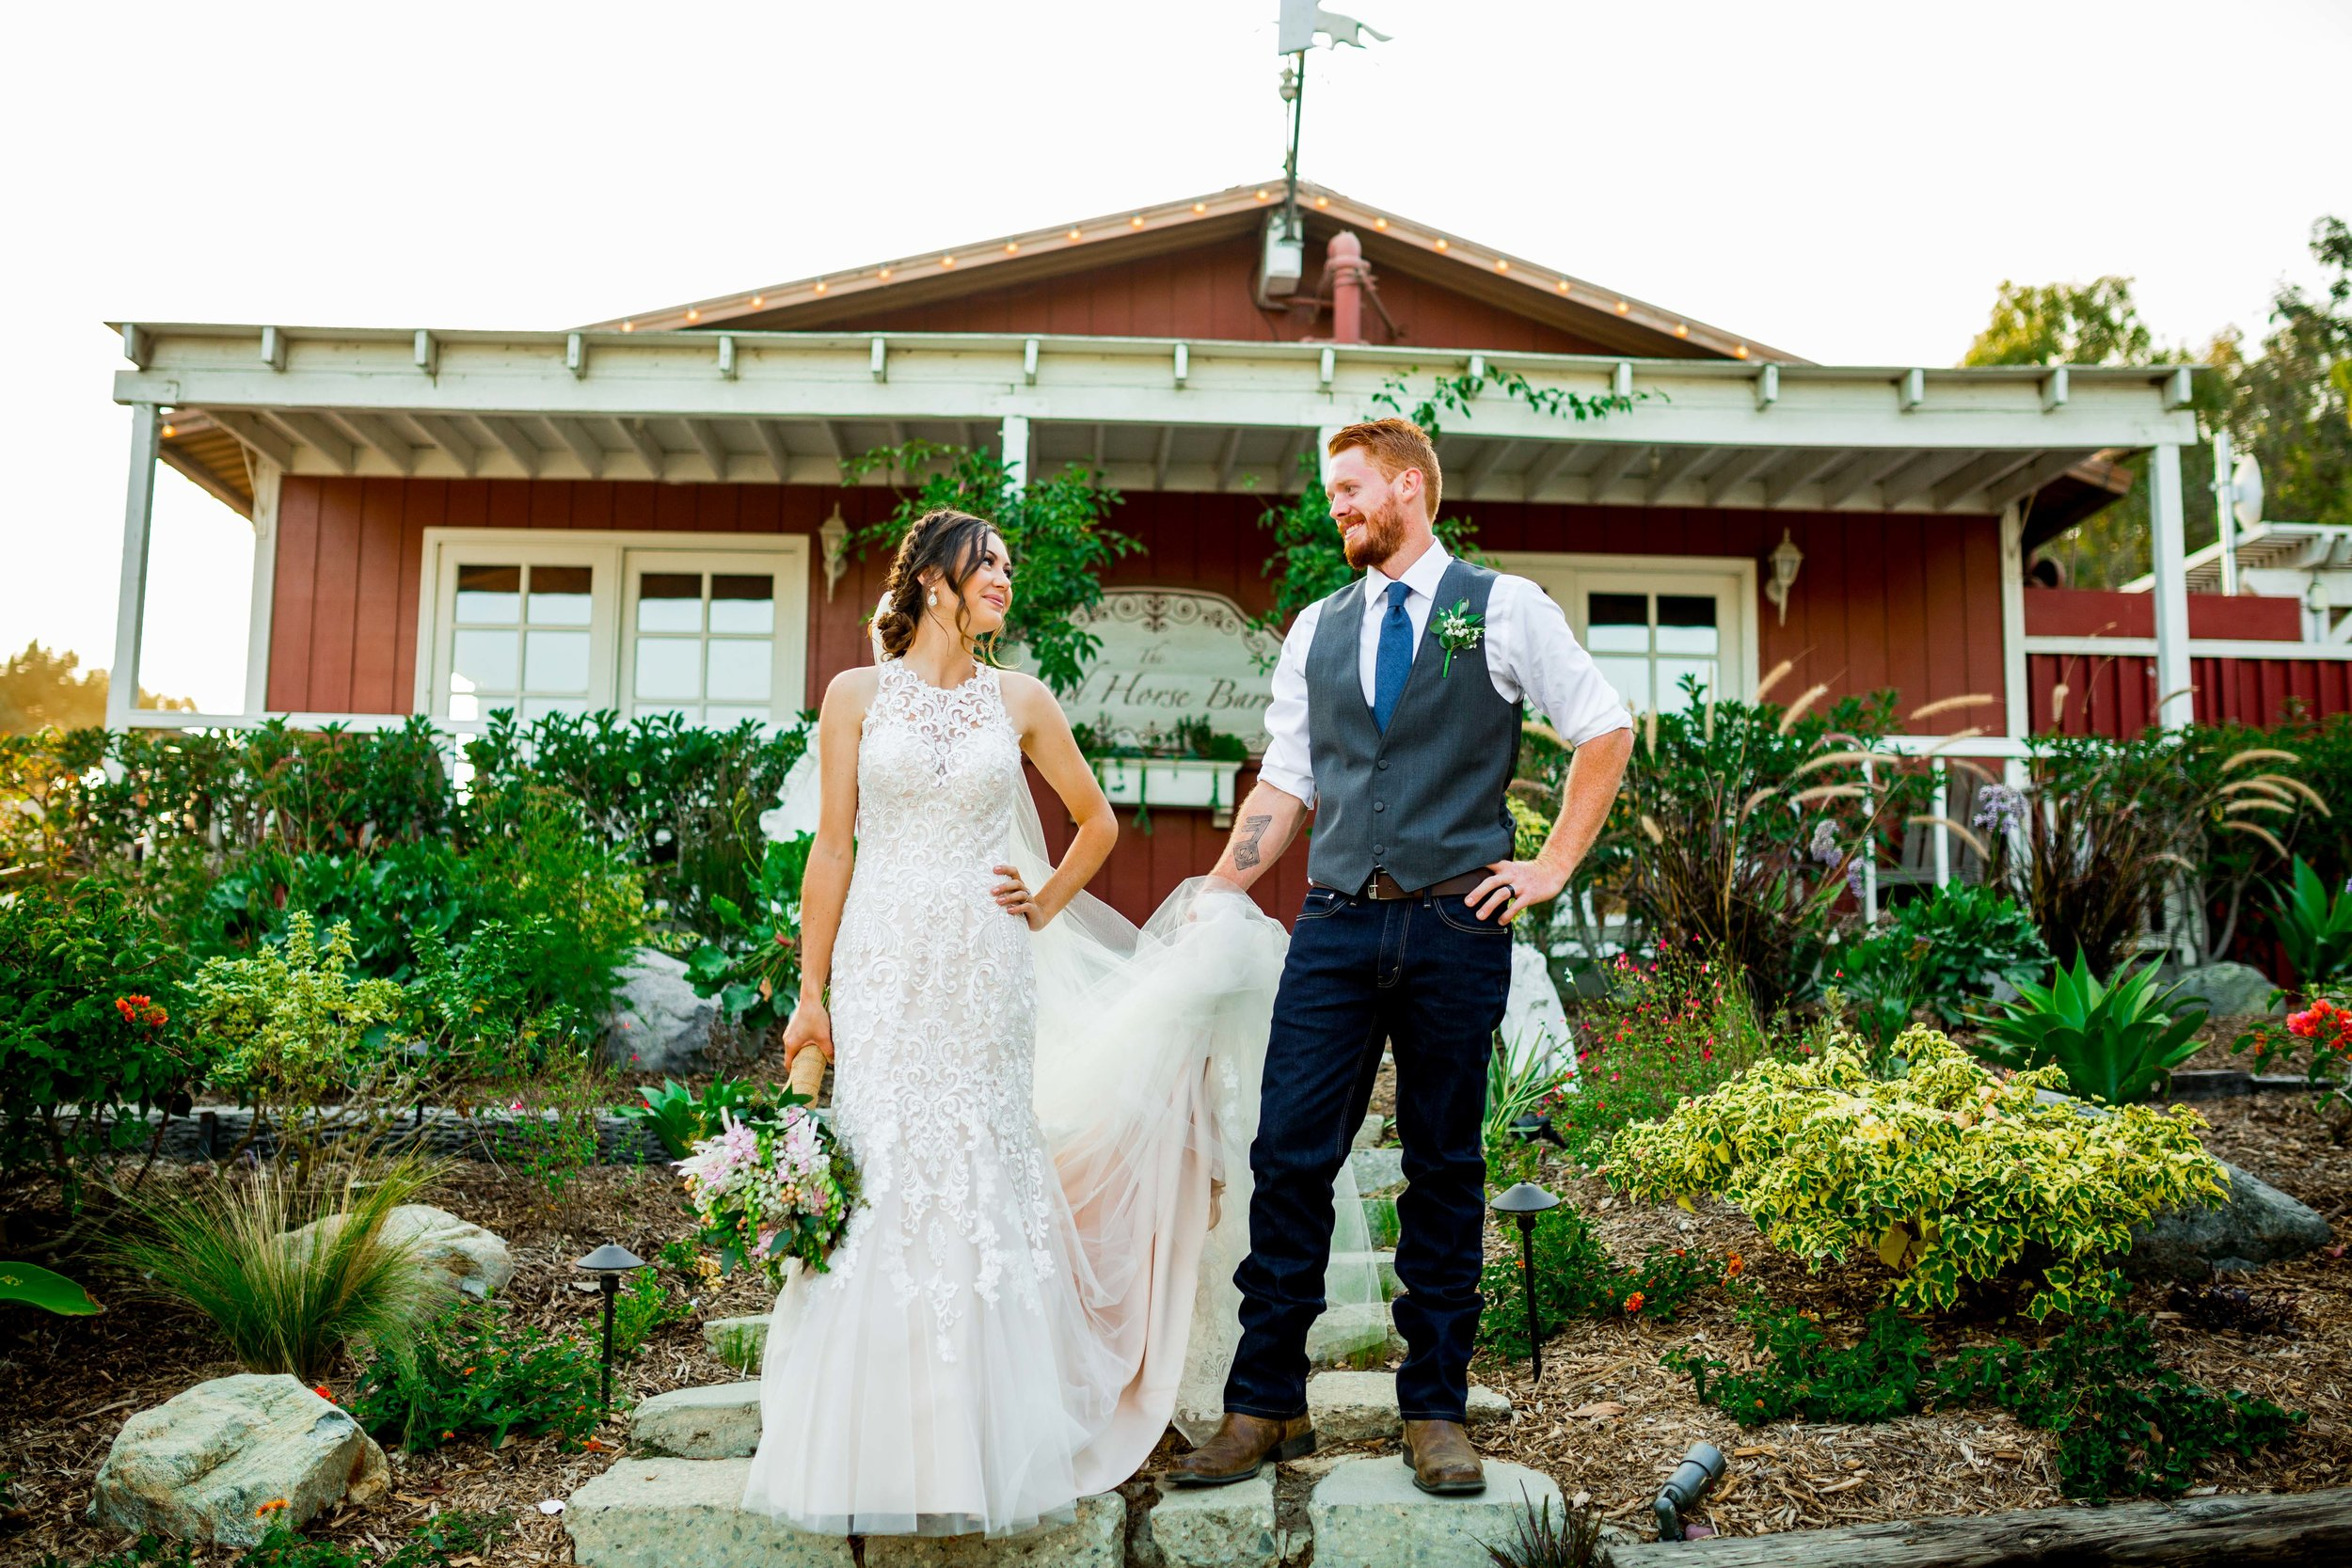 Huntington Beach Orange County Southern California Romantic Fun Rustic Elegant Wedding Engagement Photographer Photography by Glass Woods Media 7.jpg